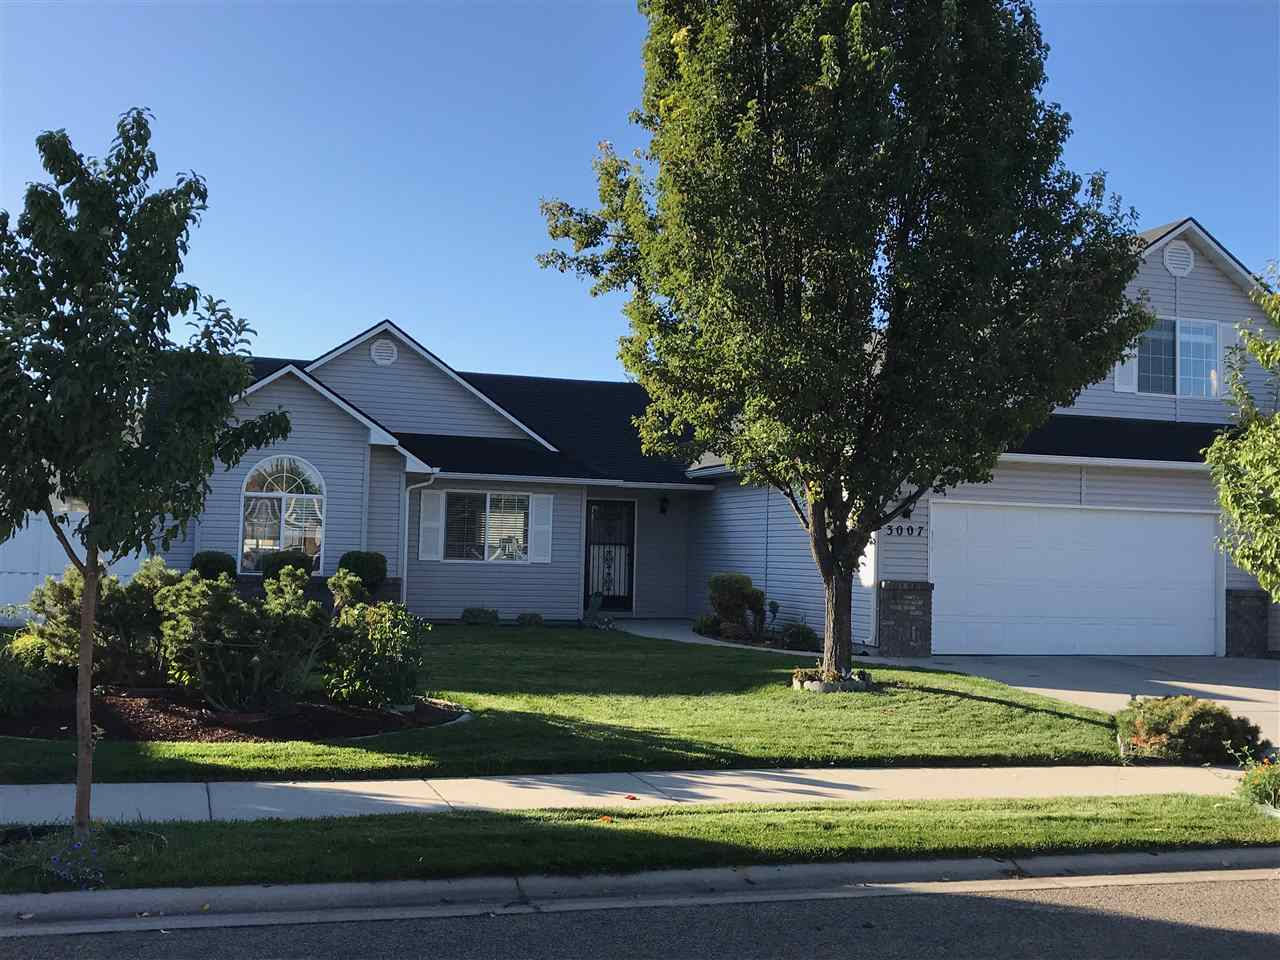 3007 E Indian Creek Drive,Meridian,Idaho 83642,3 Bedrooms Bedrooms,2 BathroomsBathrooms,Residential,3007 E Indian Creek Drive,98672466